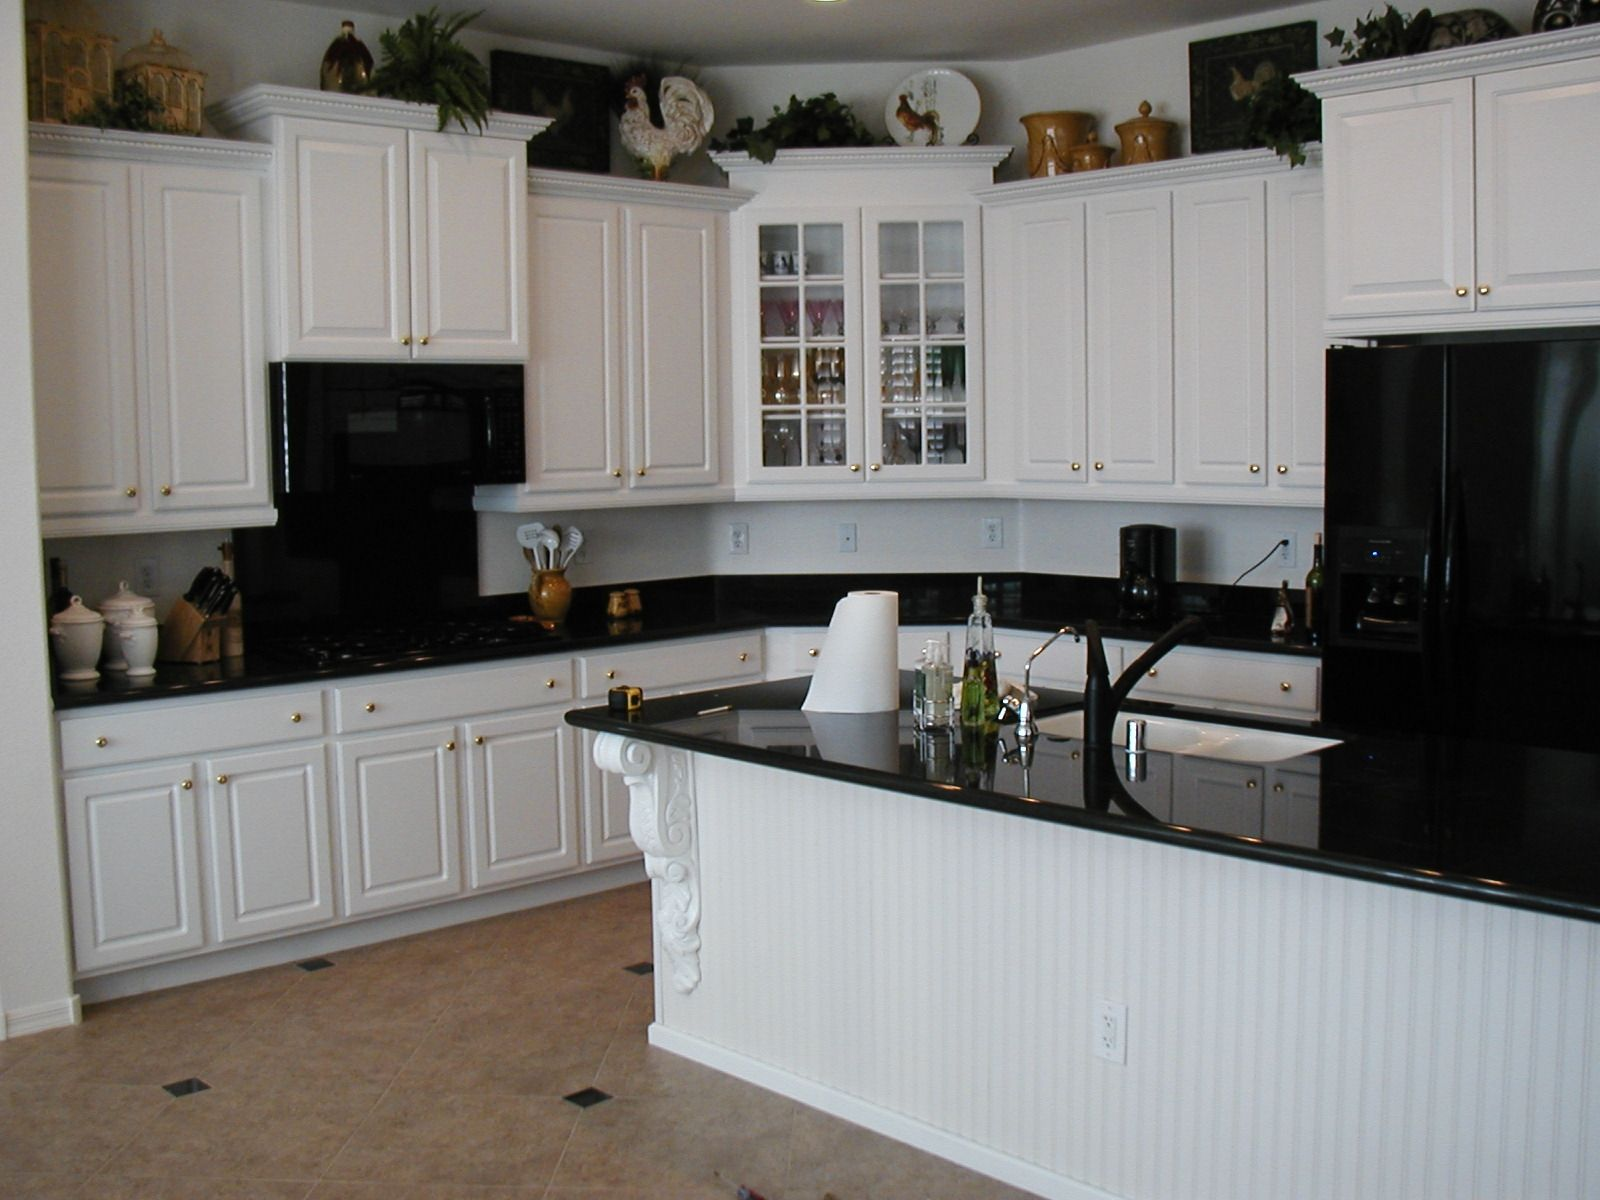 kitchen design white cabinets black appliances. creamy white kitchen cabinets with black appliances are ever stylish design s